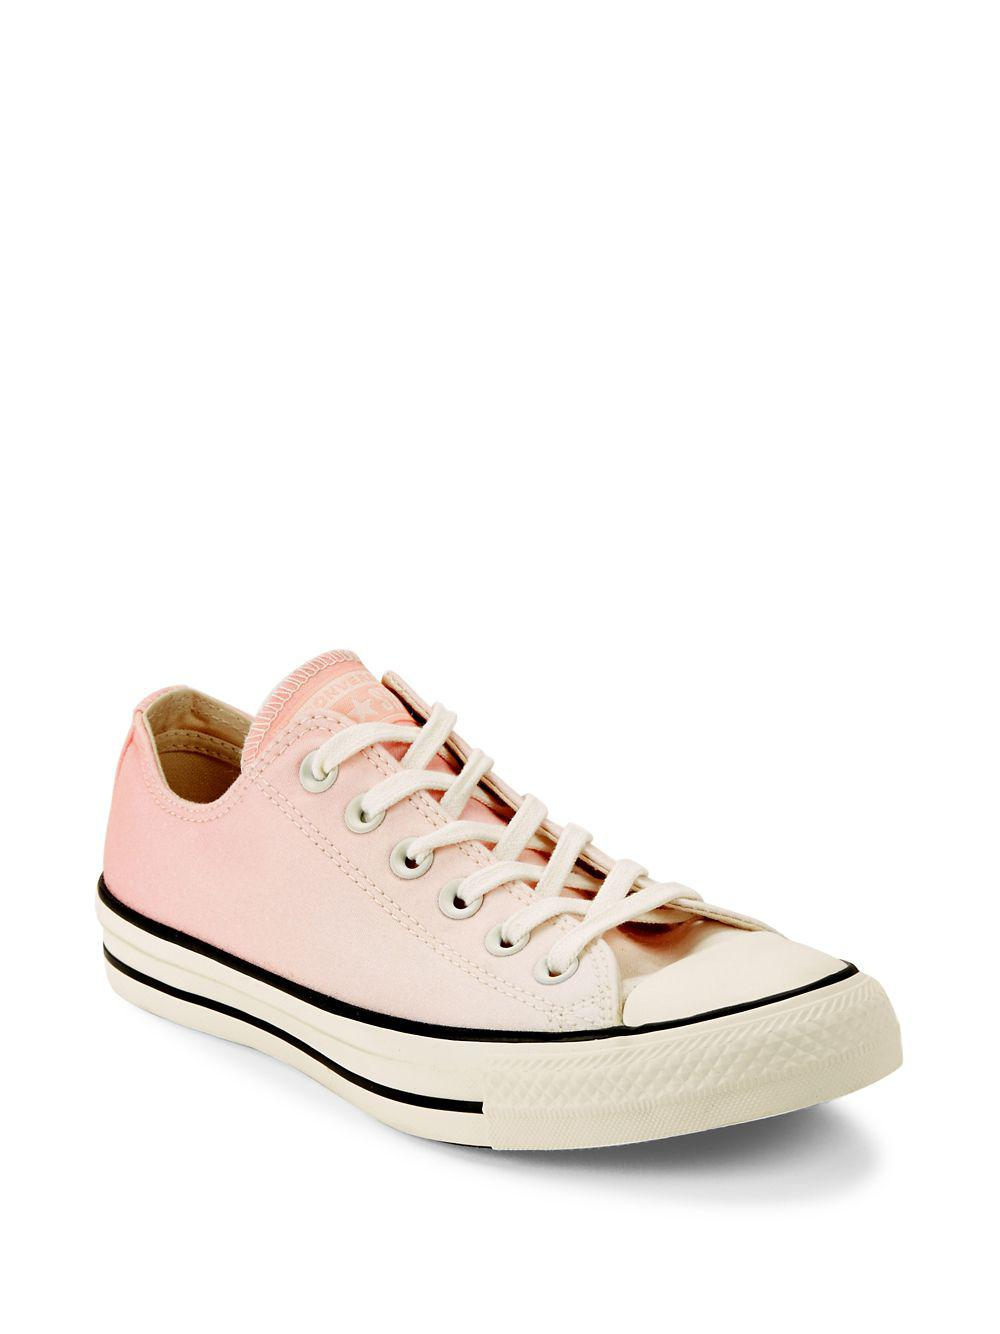 1da13bcfa2c3 Lyst - Converse All Star Ox Low-top Sneakers in Pink